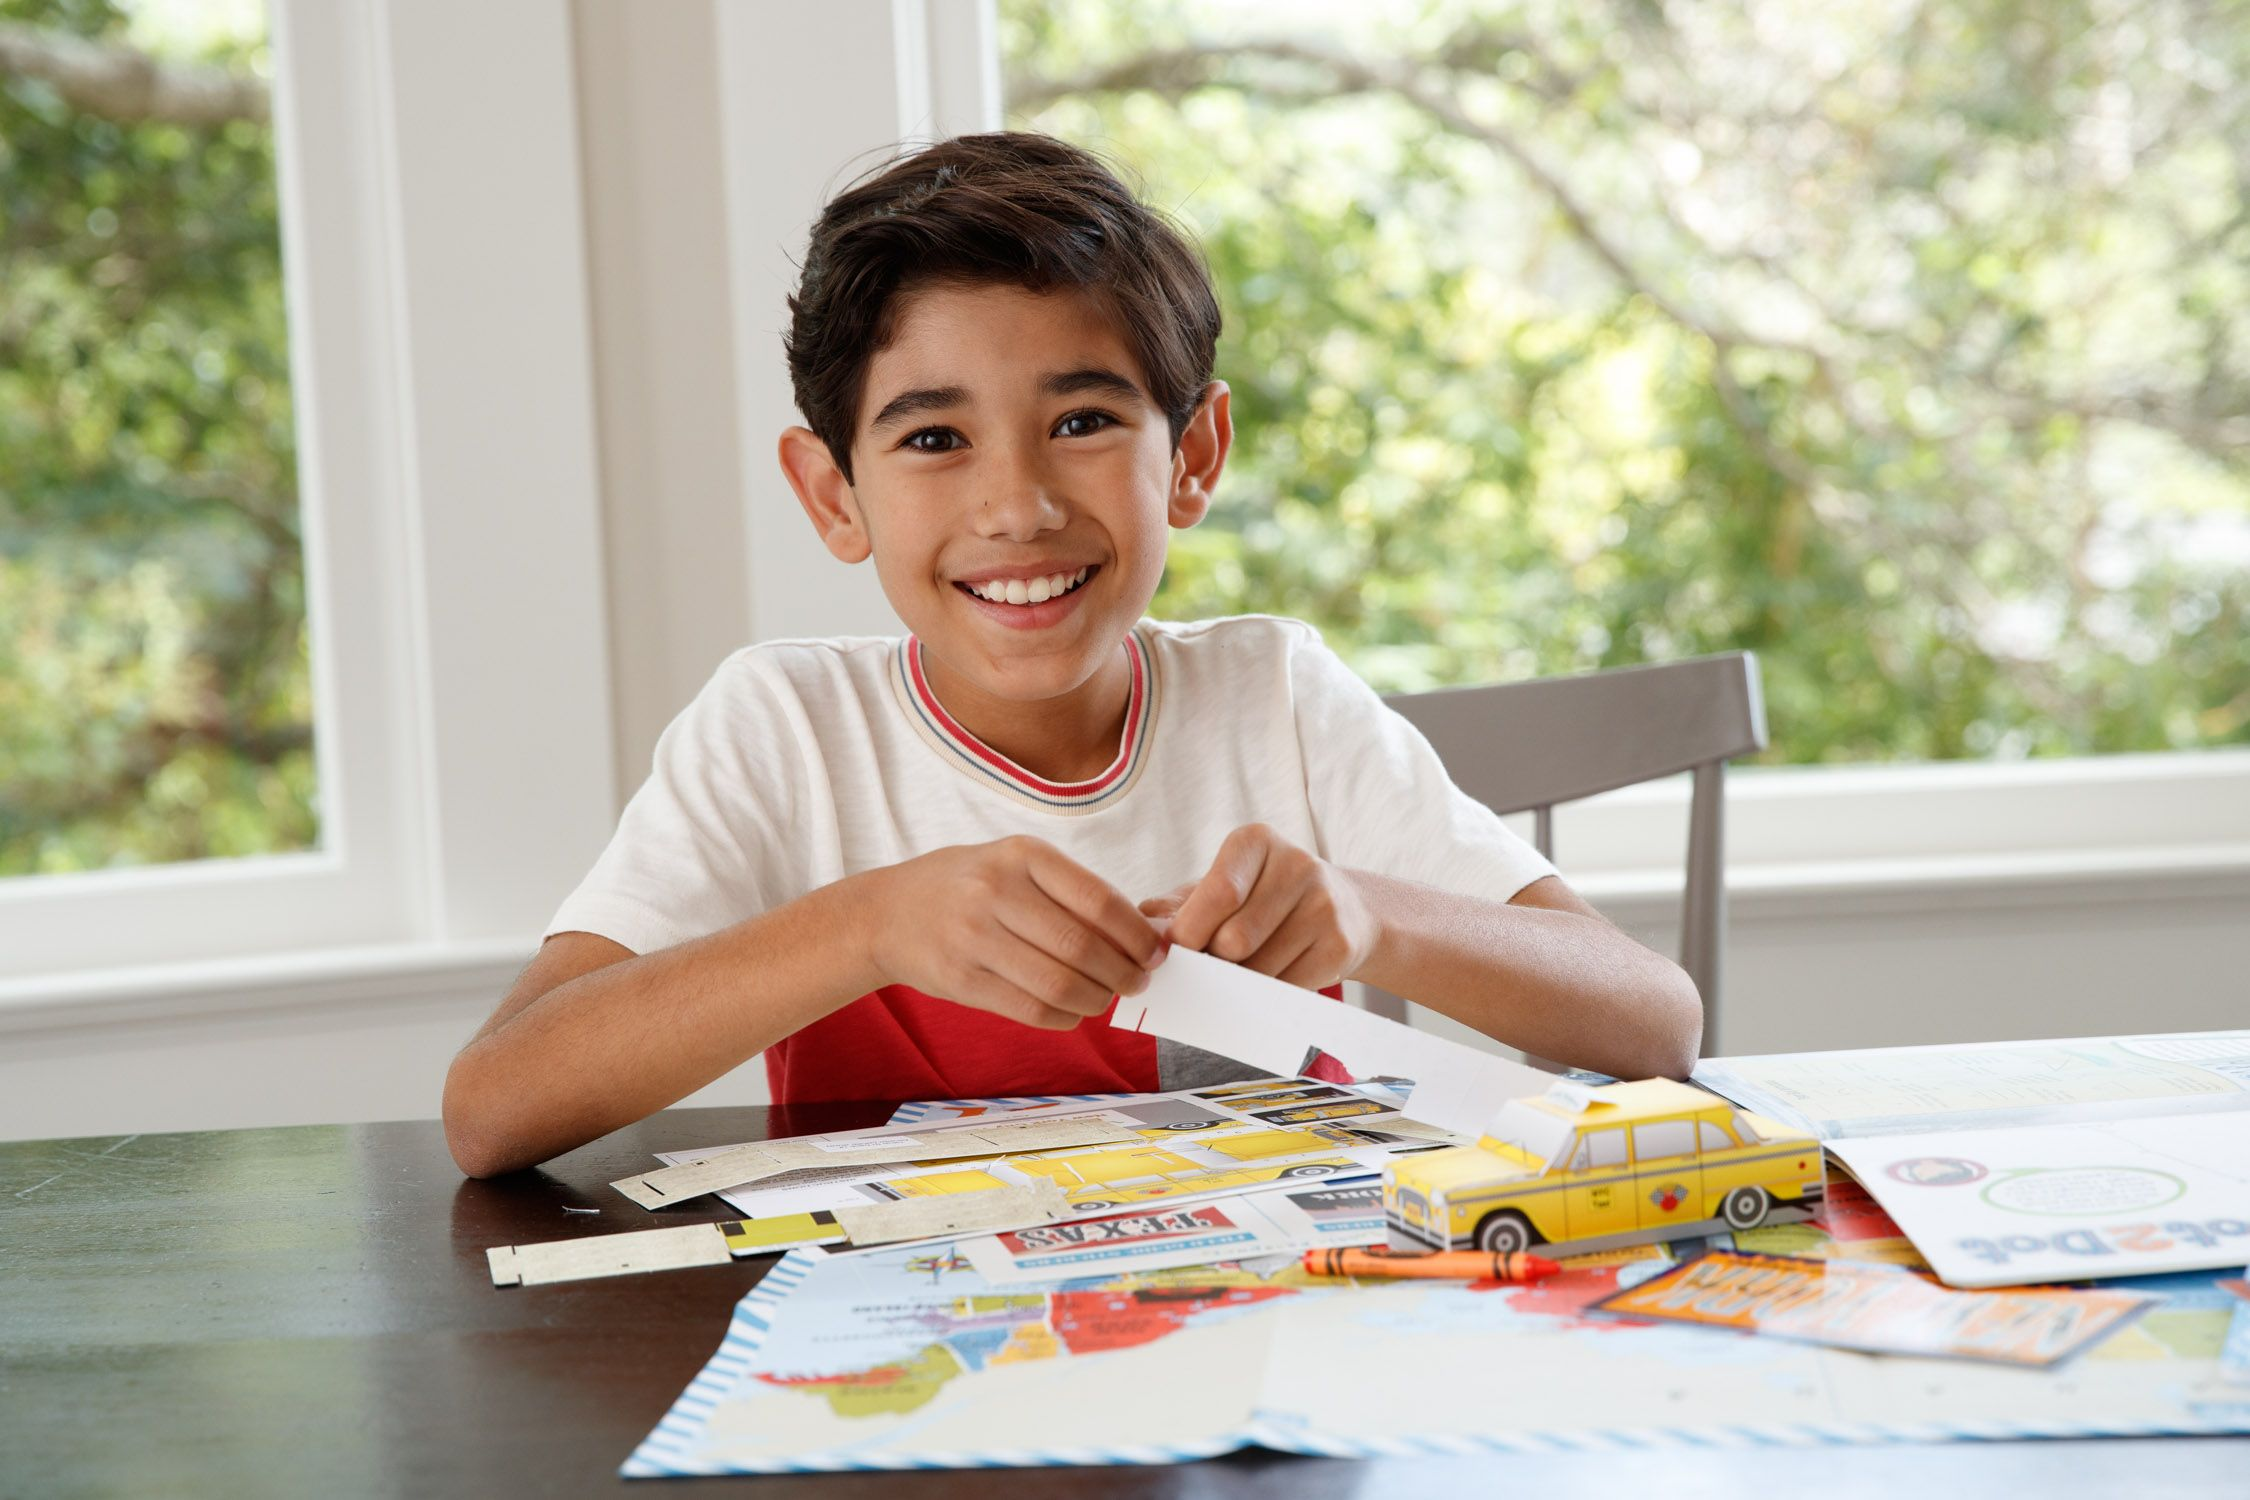 Boy with map on table assembling paper taxi